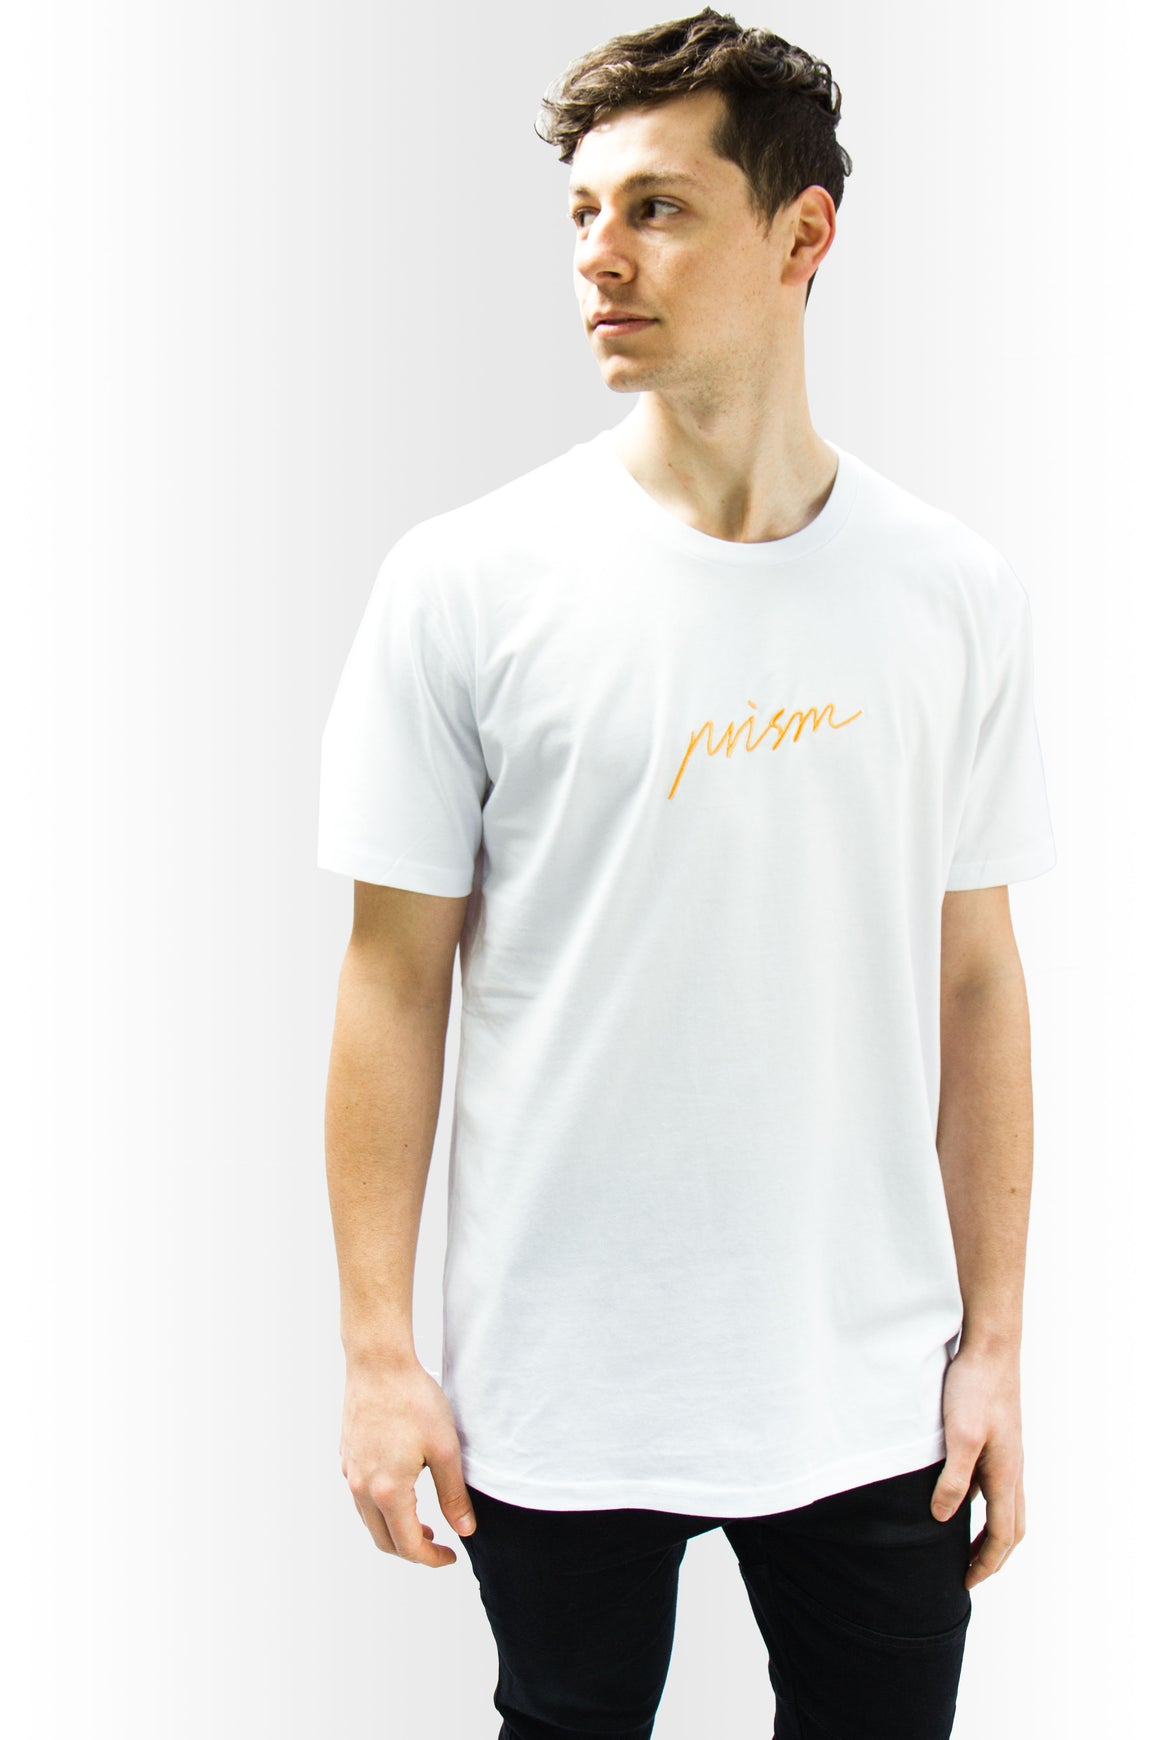 Script Tee - WHITE - Prism Collective